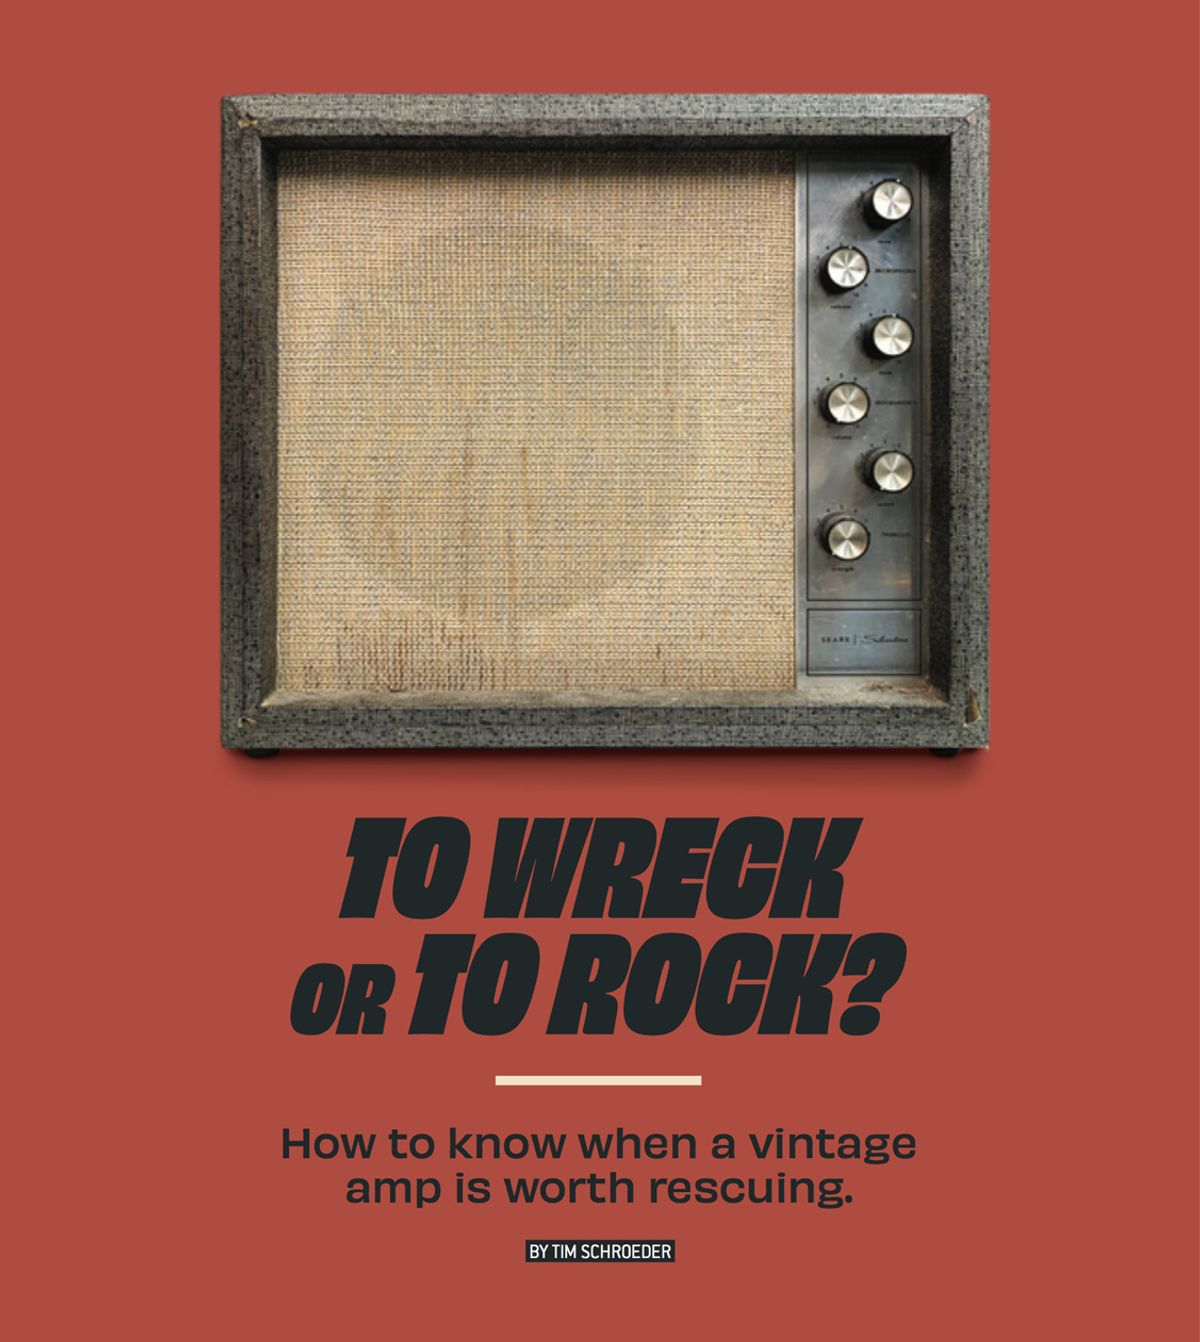 To Wreck or to Rock?